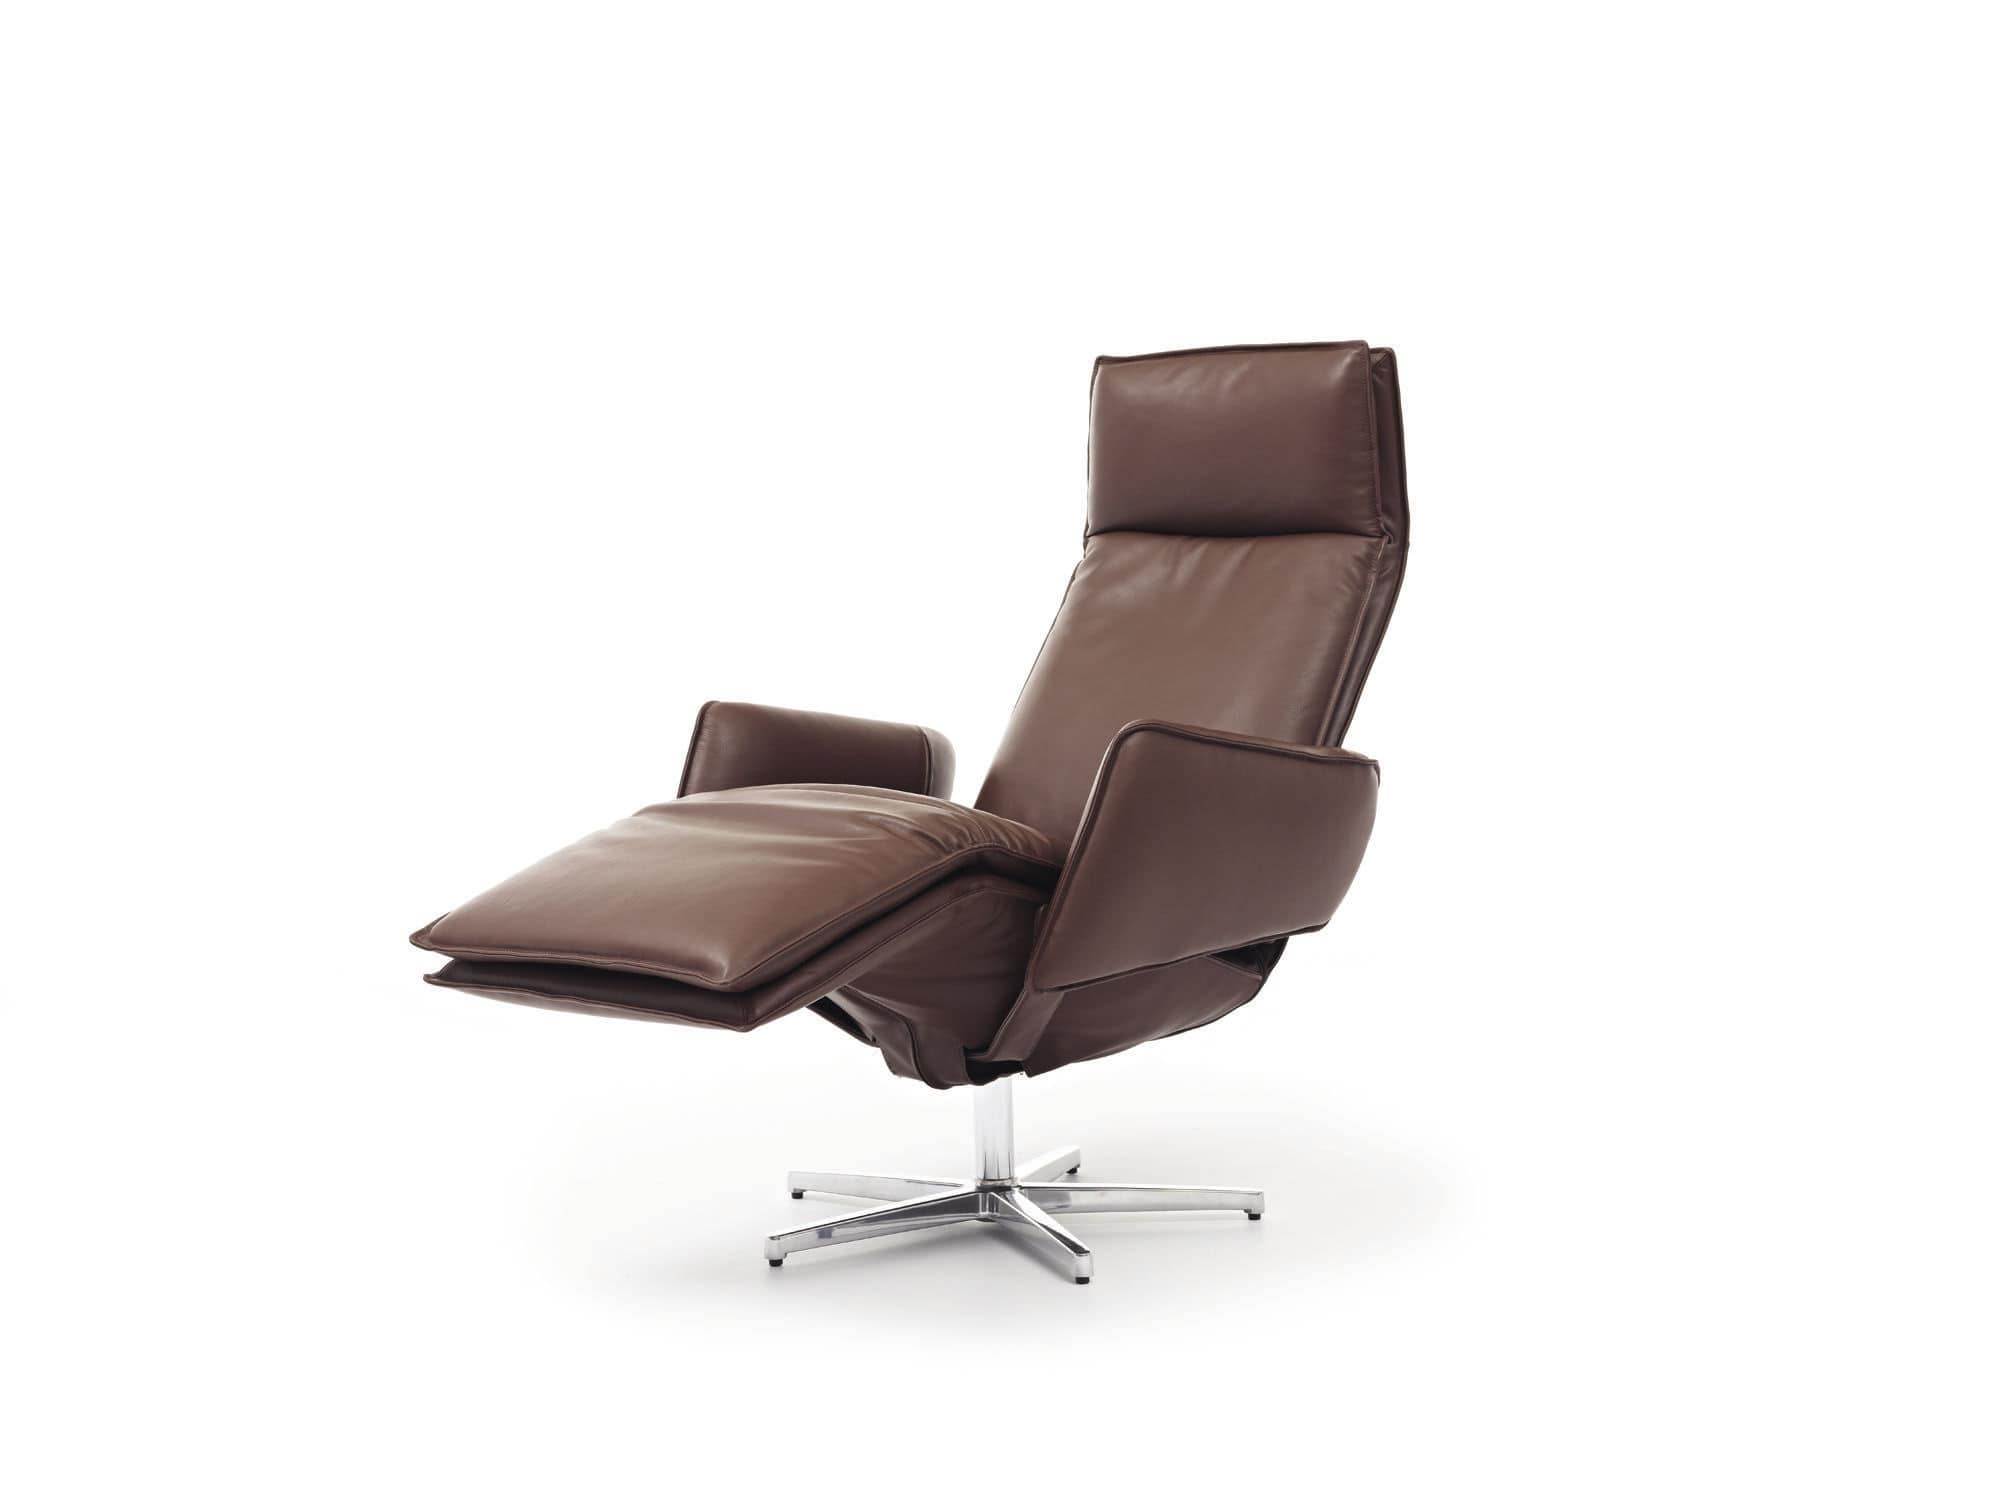 Relaxsessel Modern Contemporary Armchair - Largo - Durlet - Leather / Metal / Wooden